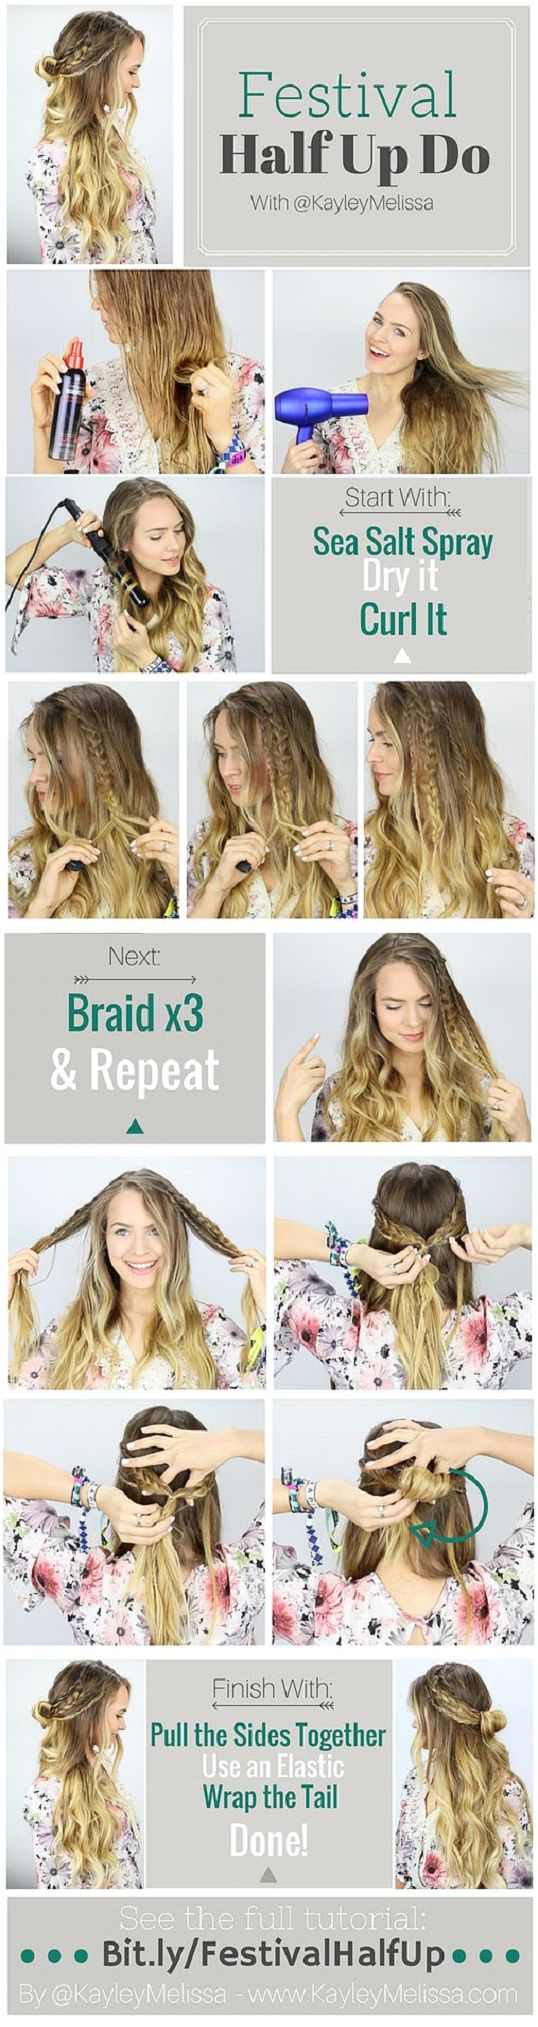 77 best Hairstyles images on Pinterest | Hairstyle ideas, Retro ...